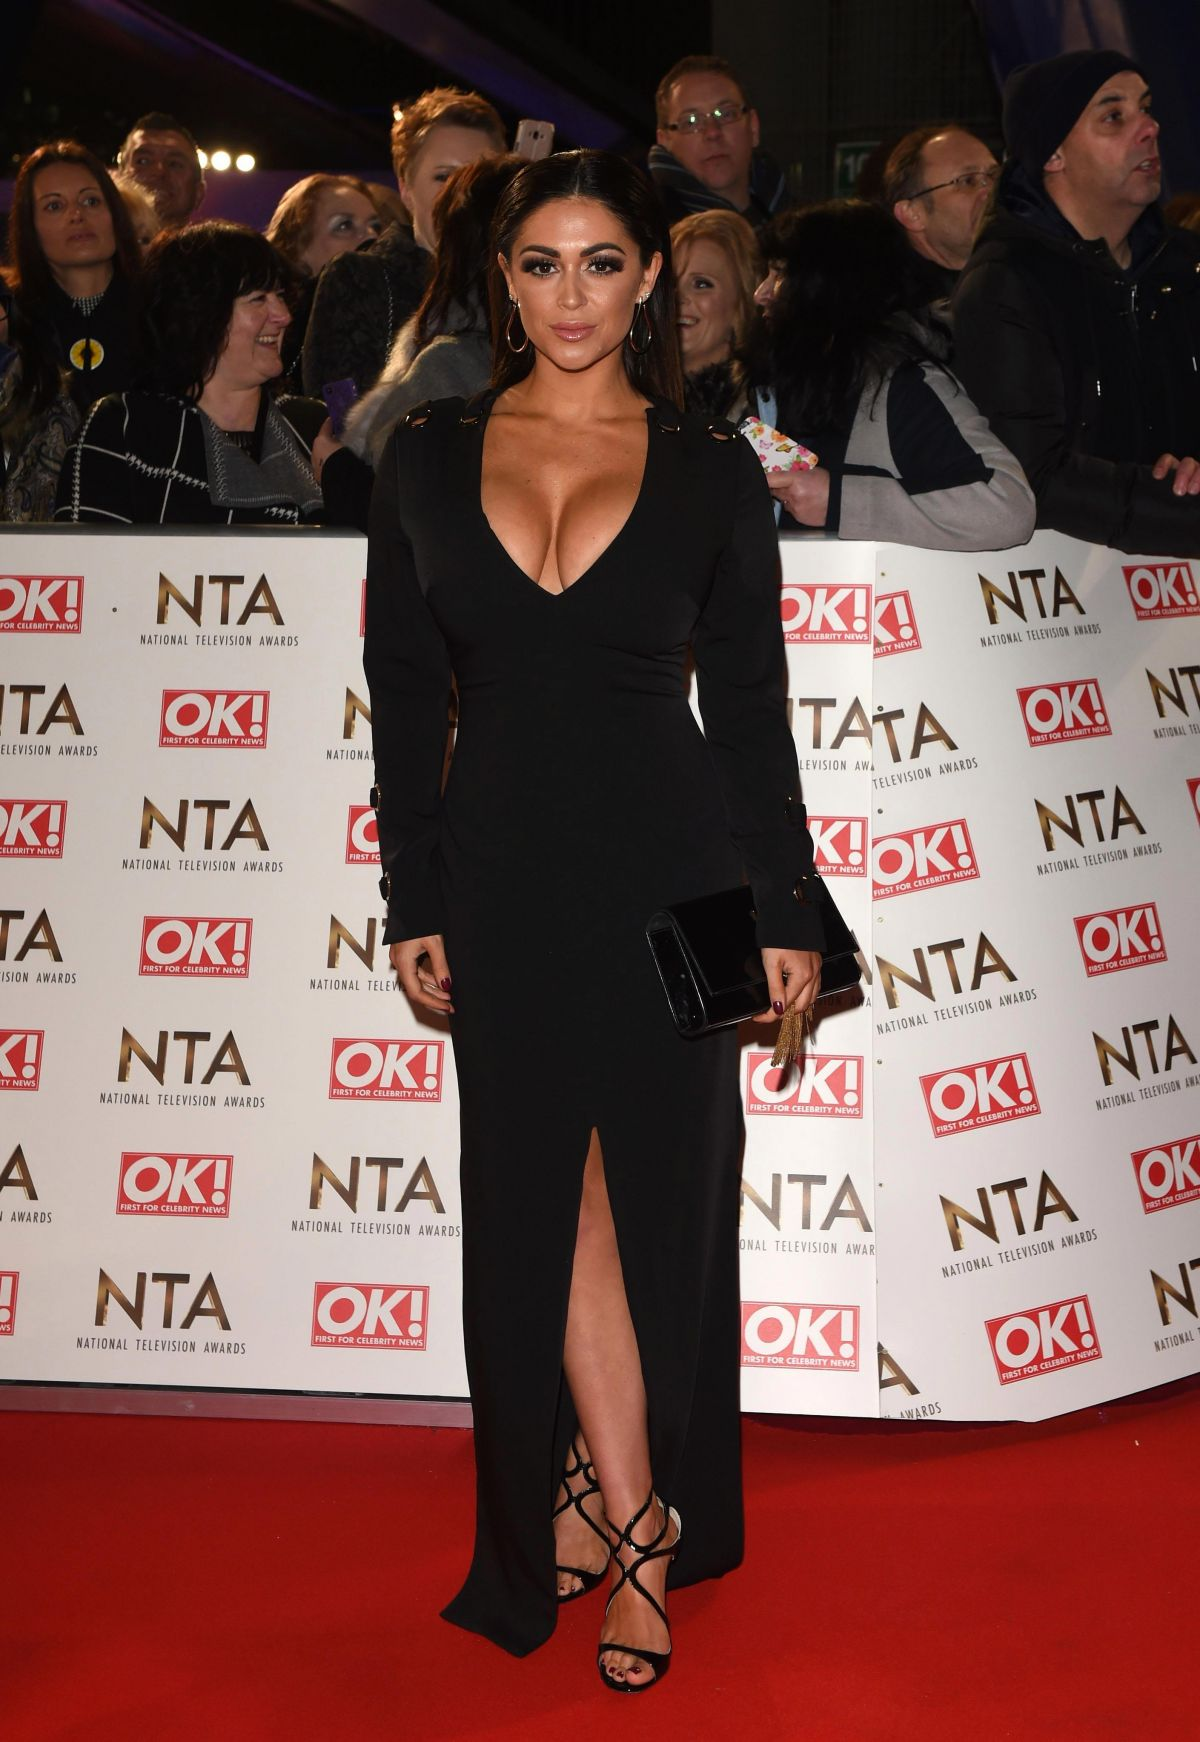 CASEY BATCHELOR at National Television Awards in London 01/25/2017